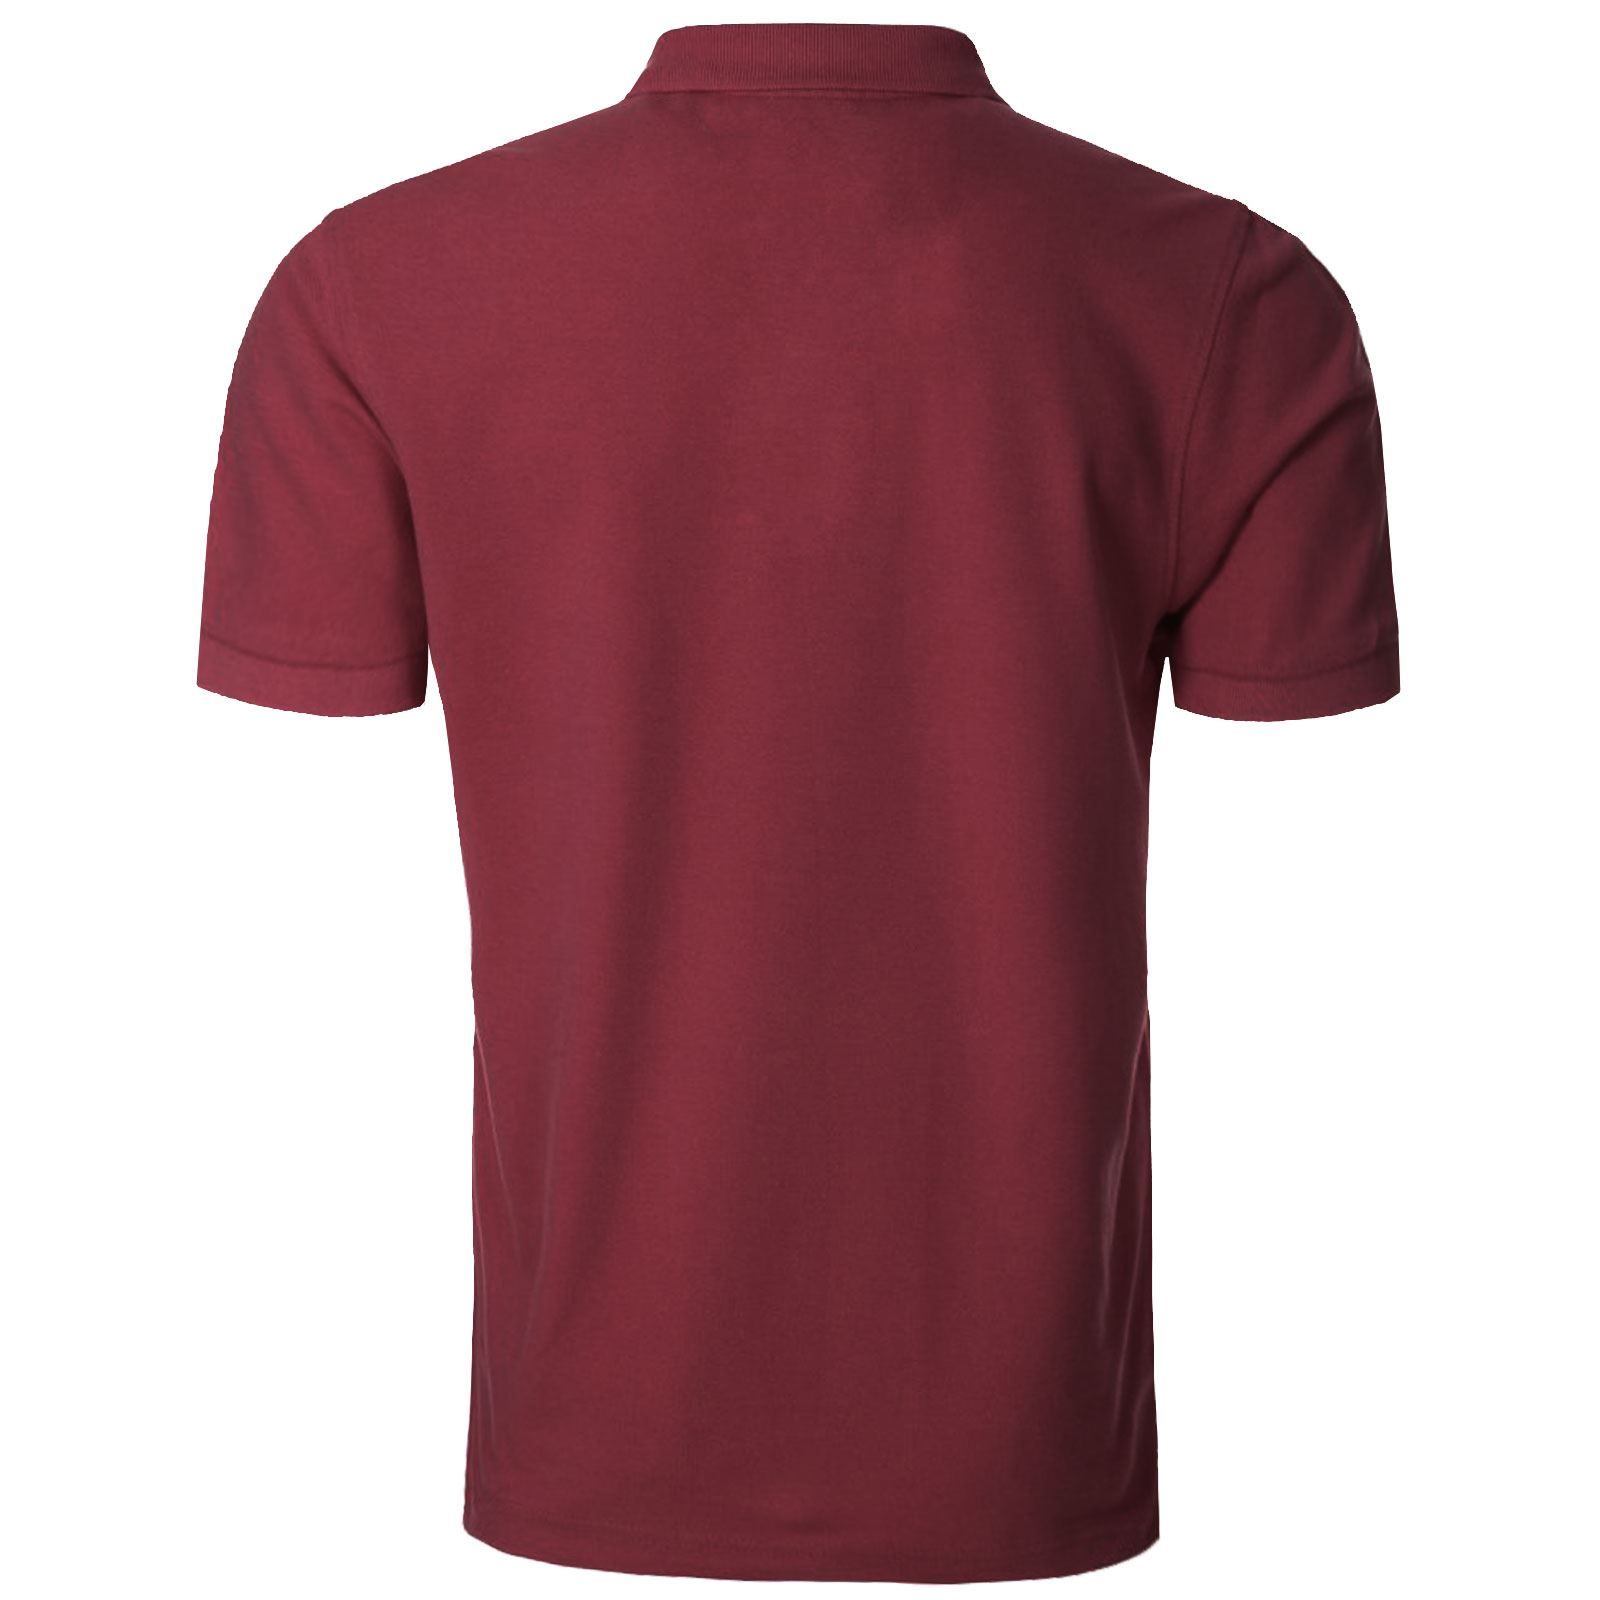 NEW-MENS-POLO-T-SHIRTS-SHORT-SLEEVES-TOP-GOLF-TENNIS-TEES-PIQUE-COLLAR-SPORTS thumbnail 21